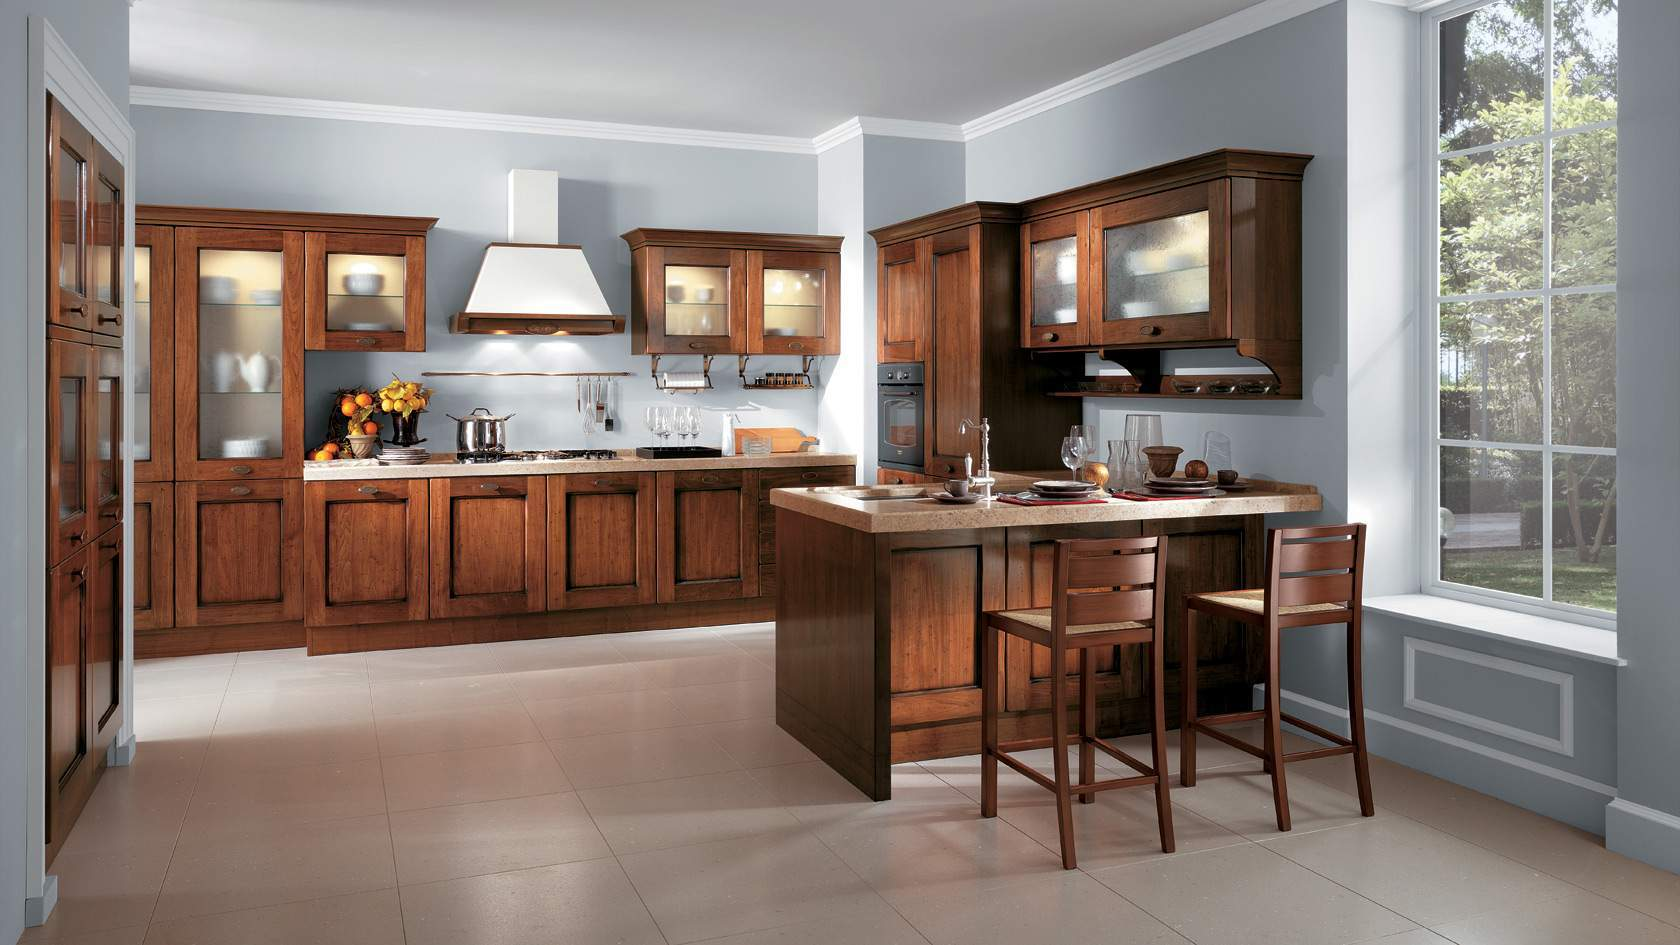 Accessori Cucine Scavolini. Awesome Kal Cucina Moderna With ...